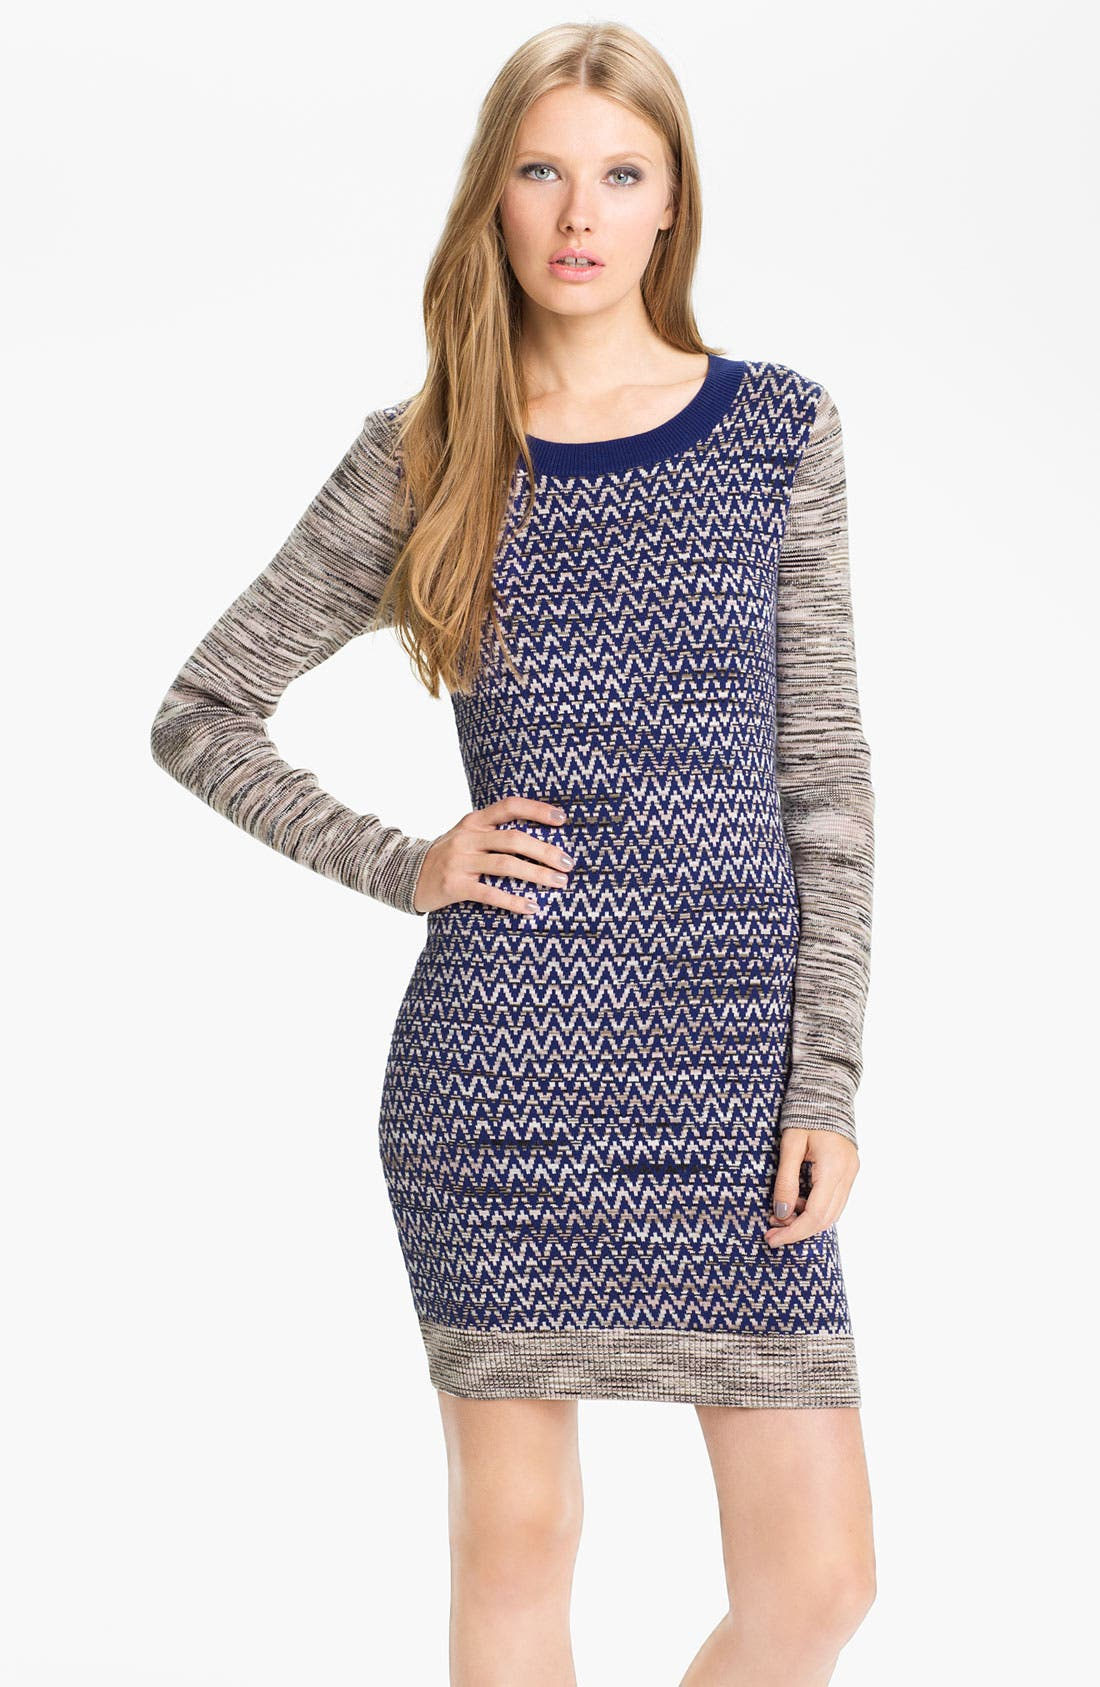 Main Image - French Connection 'Space Baby Knits' Chevron Sweater Dress